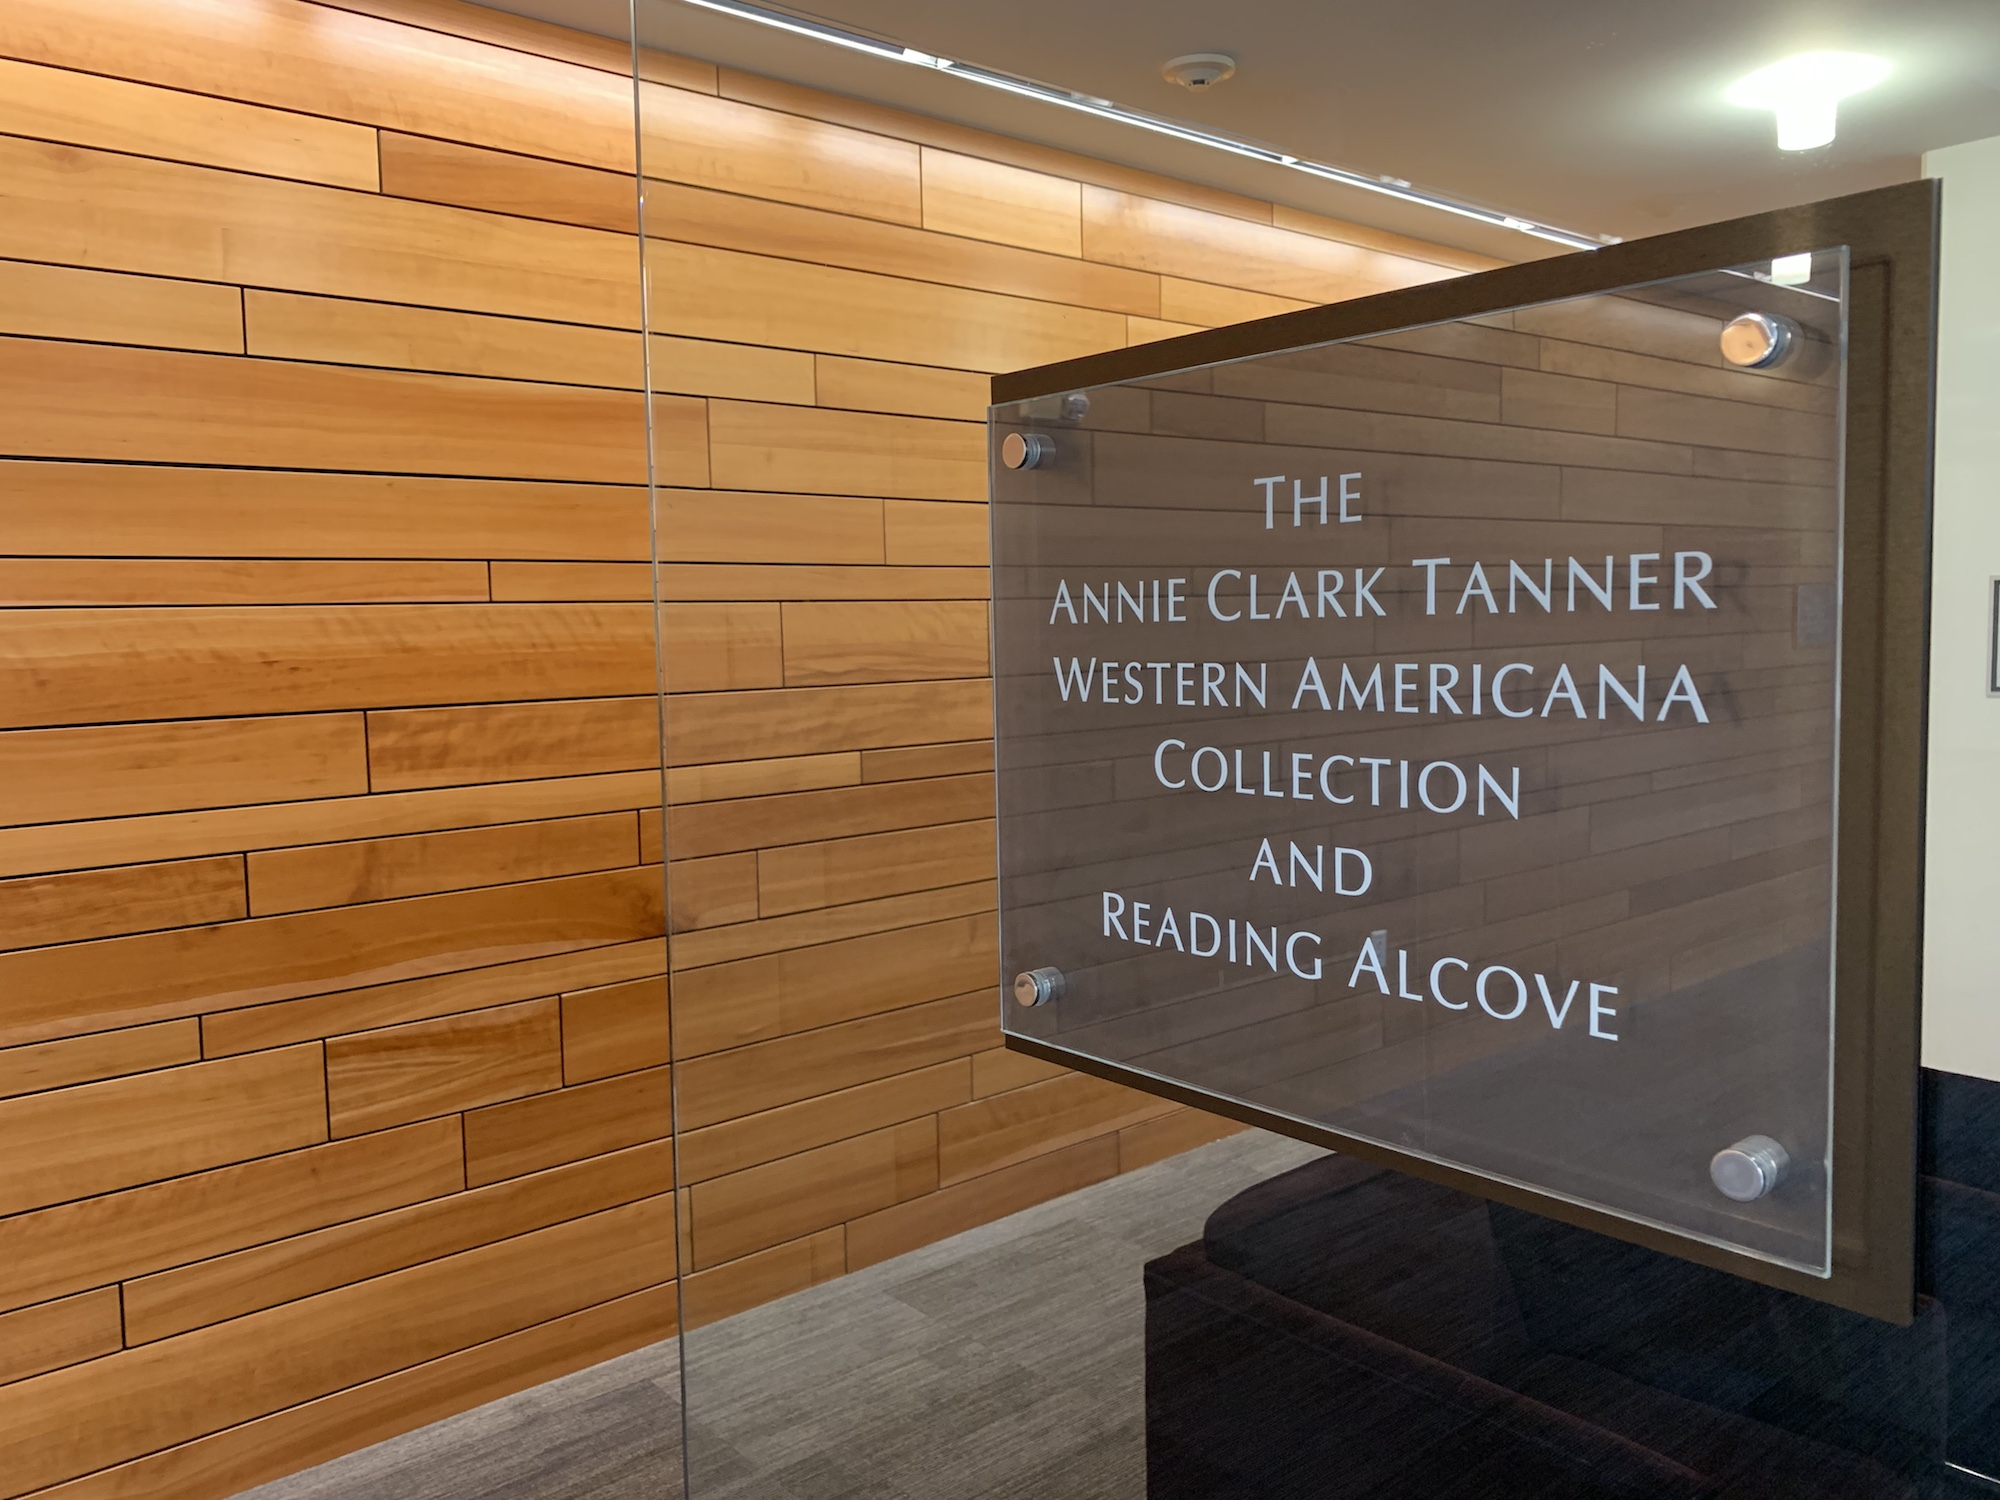 The Annie Clark Tanner Western Americana Collection and Reading Alcove sign